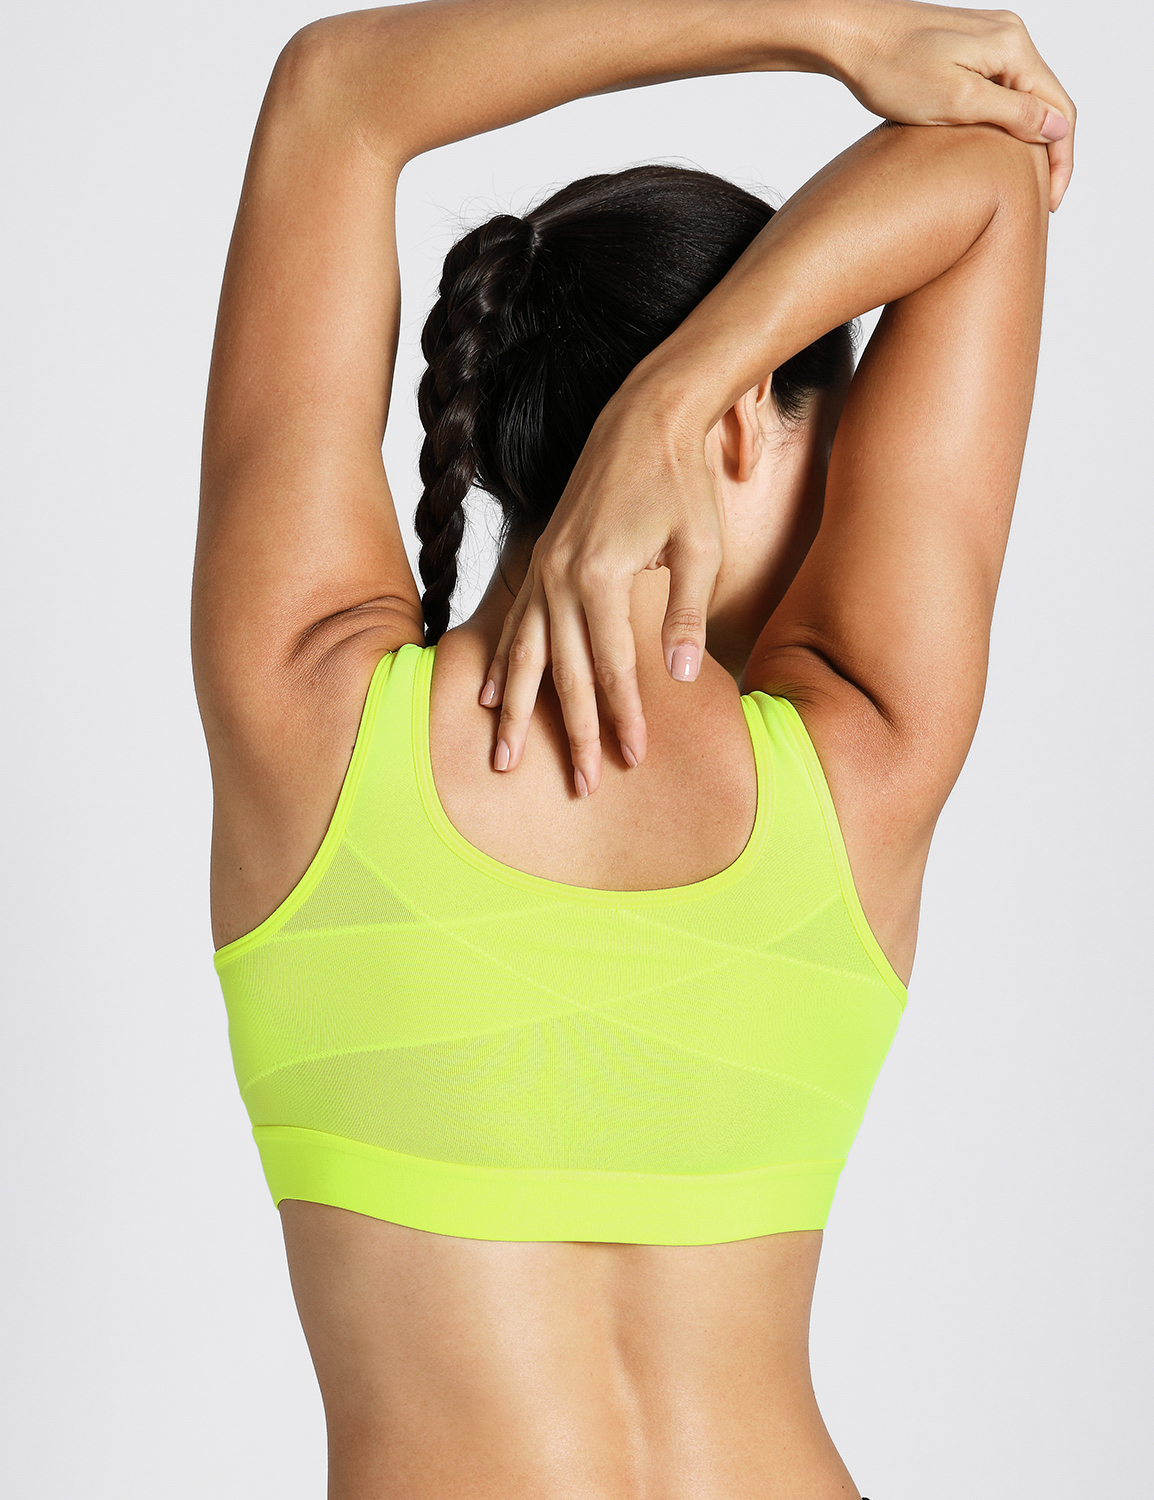 Women/'s High Impact Wireless Padded Cup Tank Top Gym Active-Sports-Bra